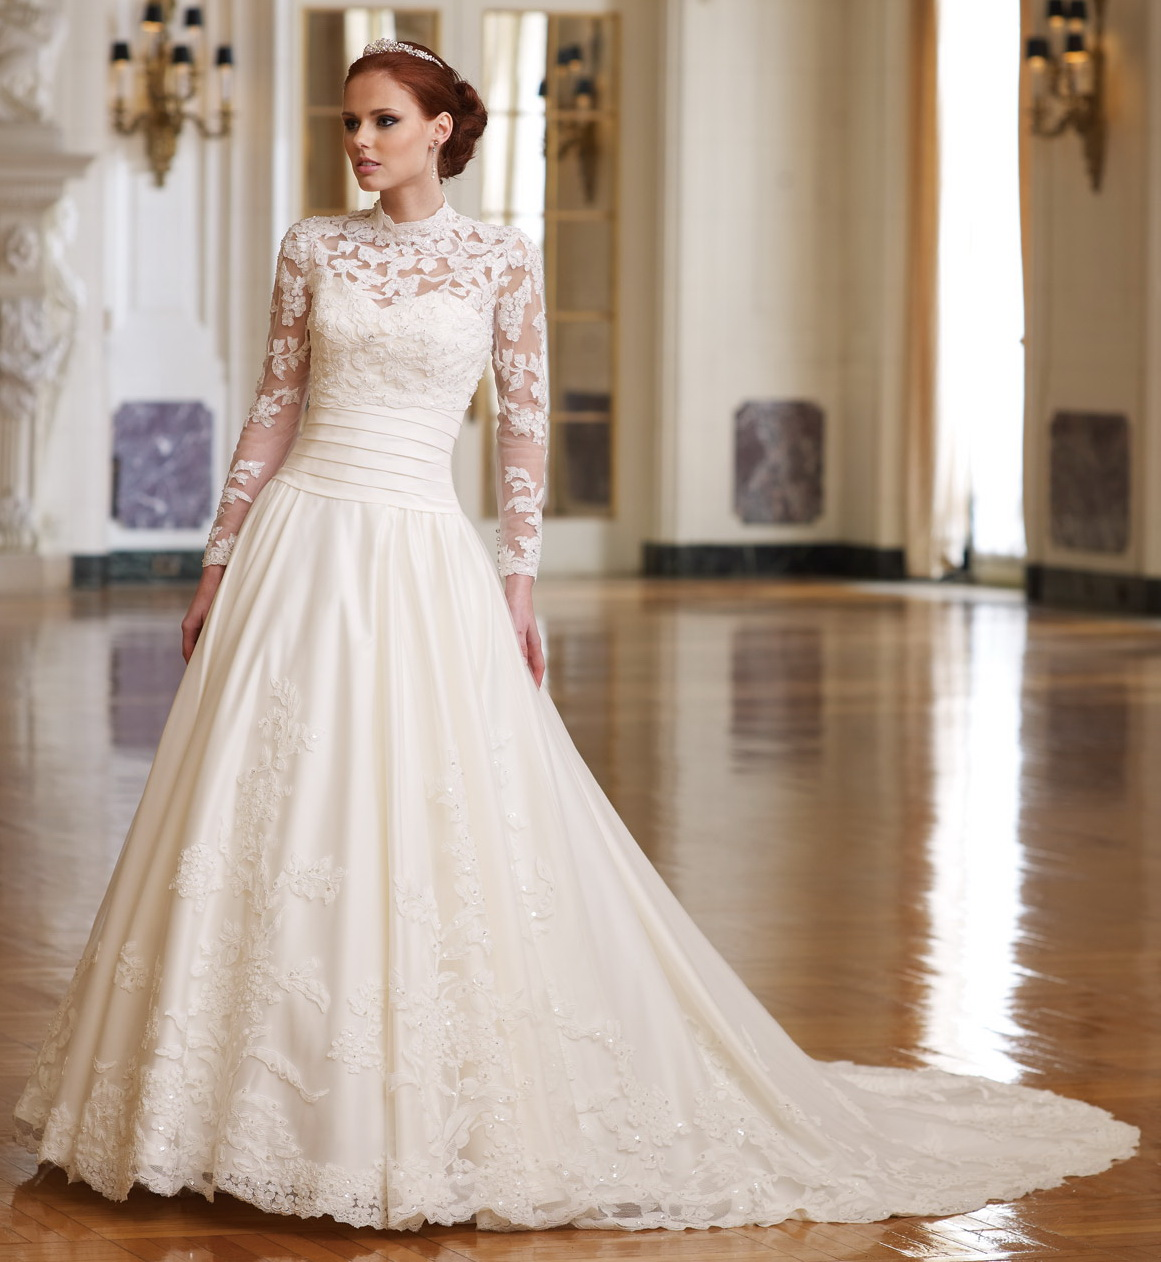 Magnificent Traditional Lace Wedding Dress 1161 x 1262 · 306 kB · jpeg